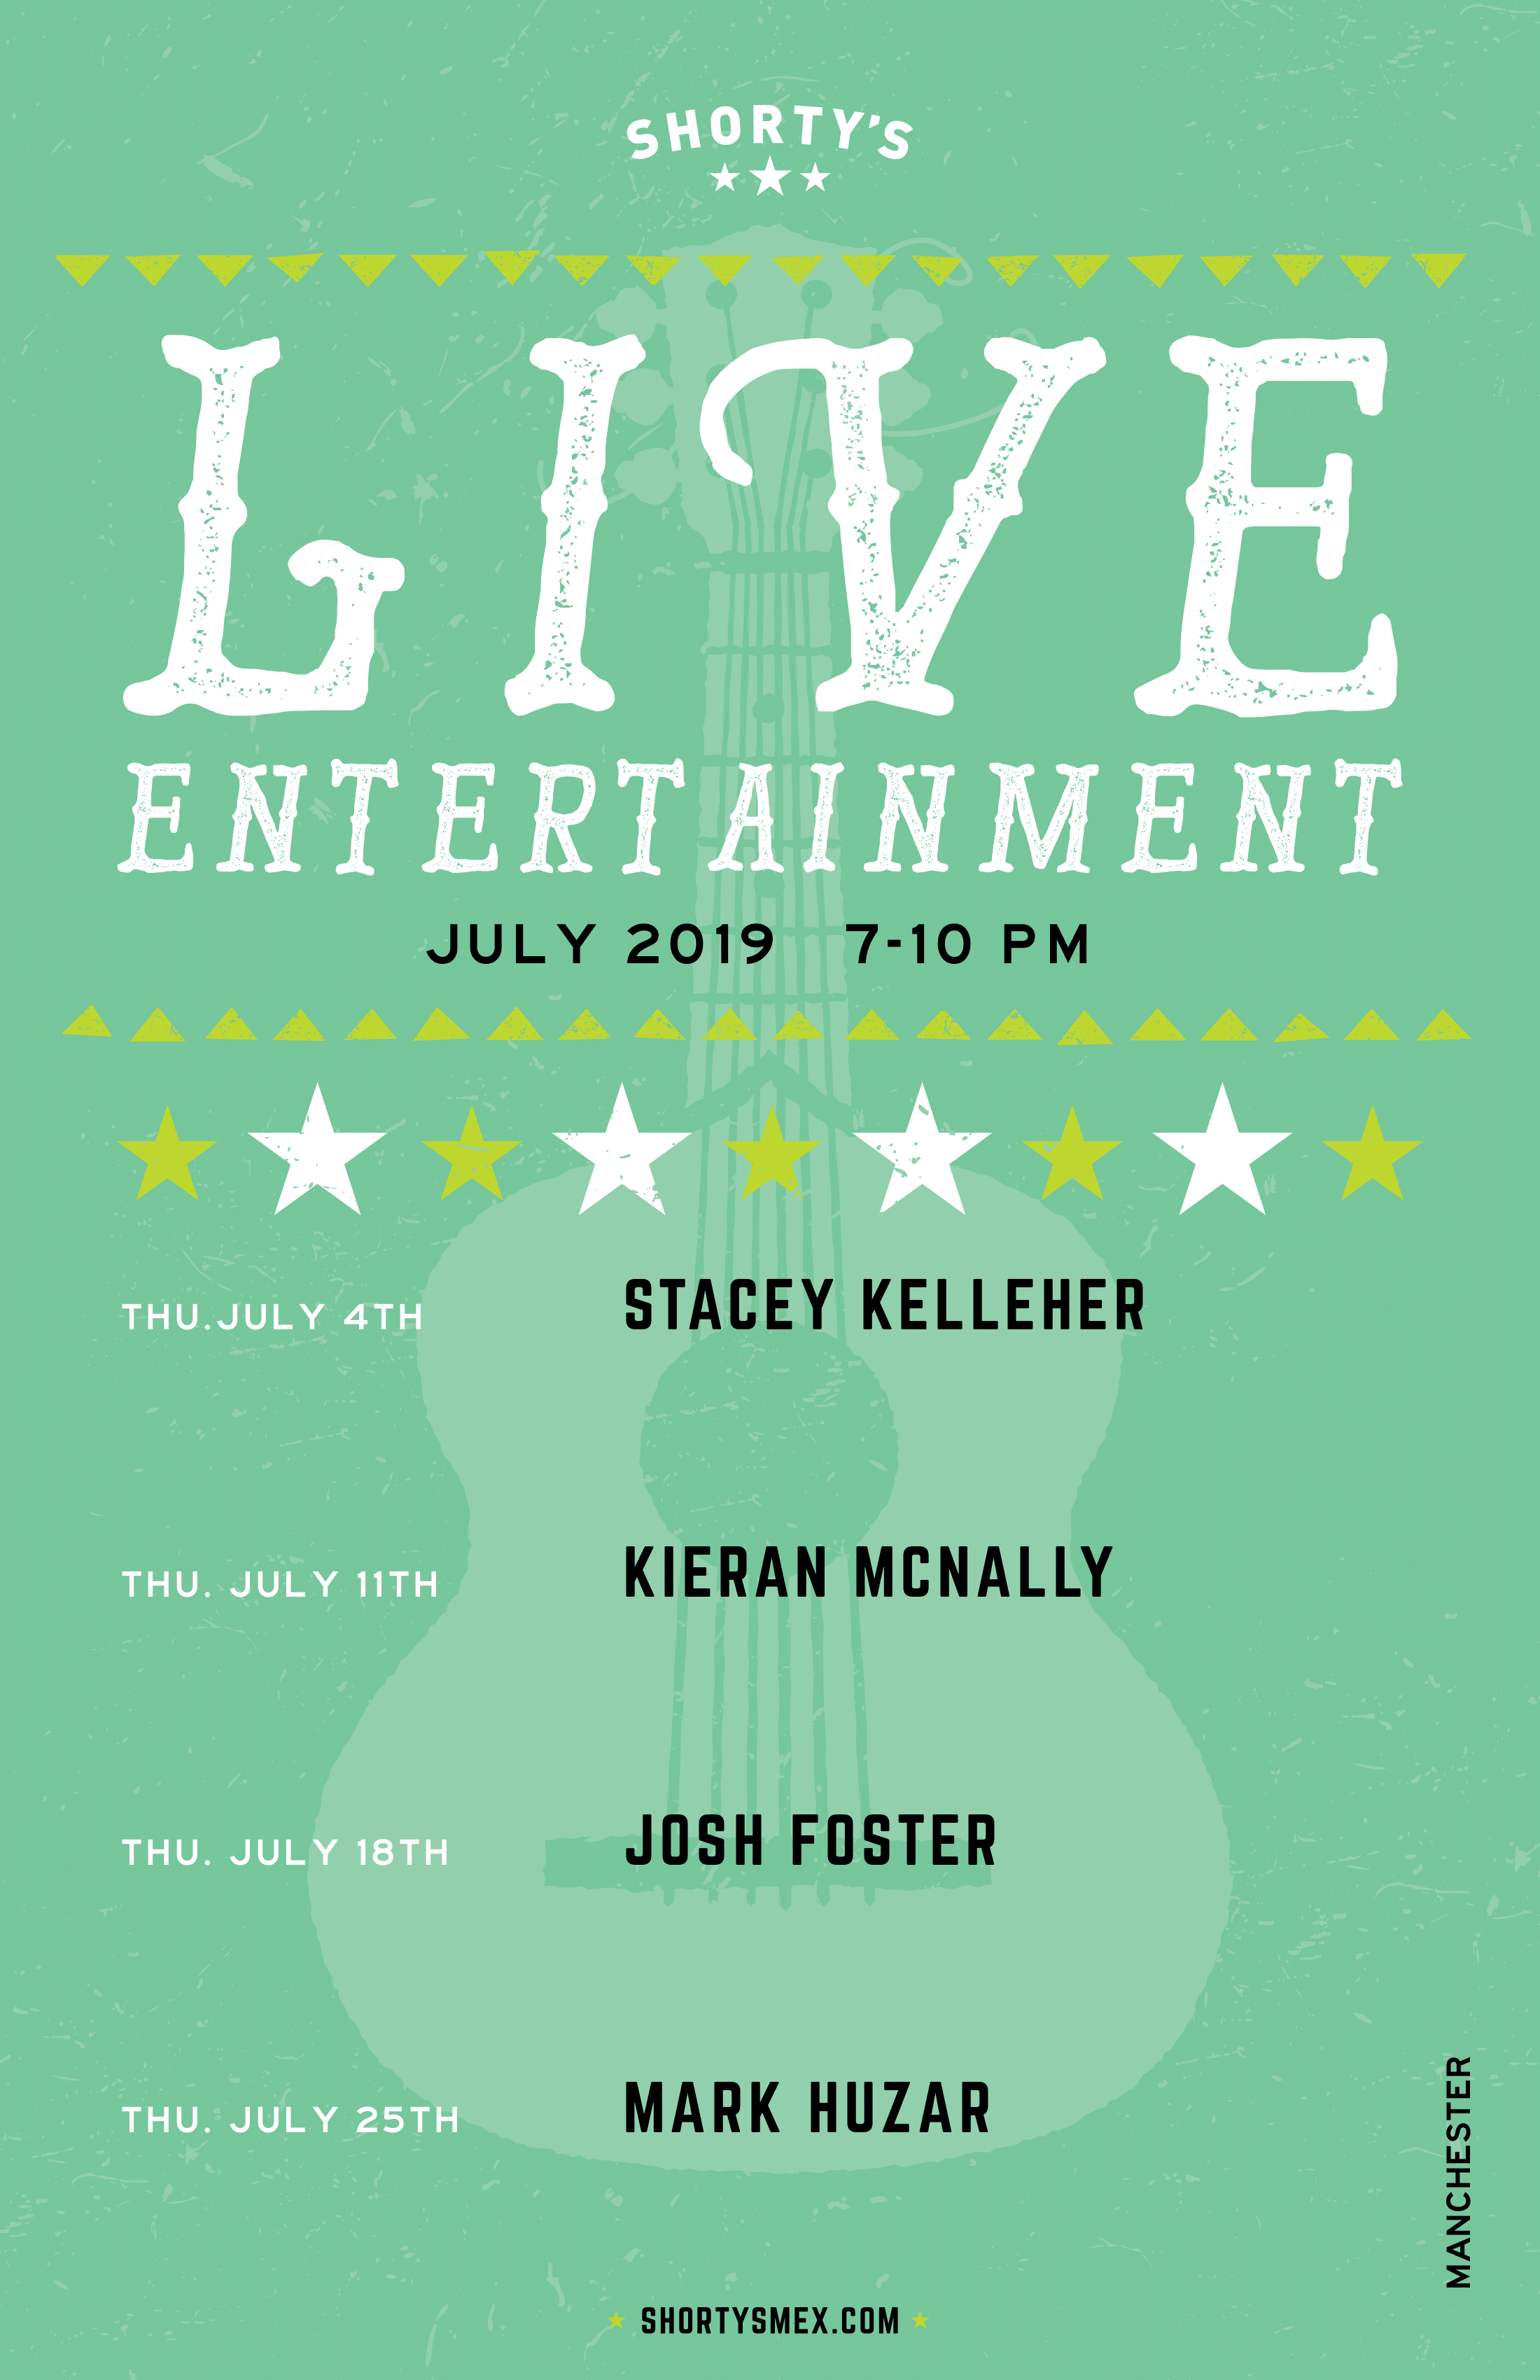 July Entertainment Schedule for Shorty's Manchester